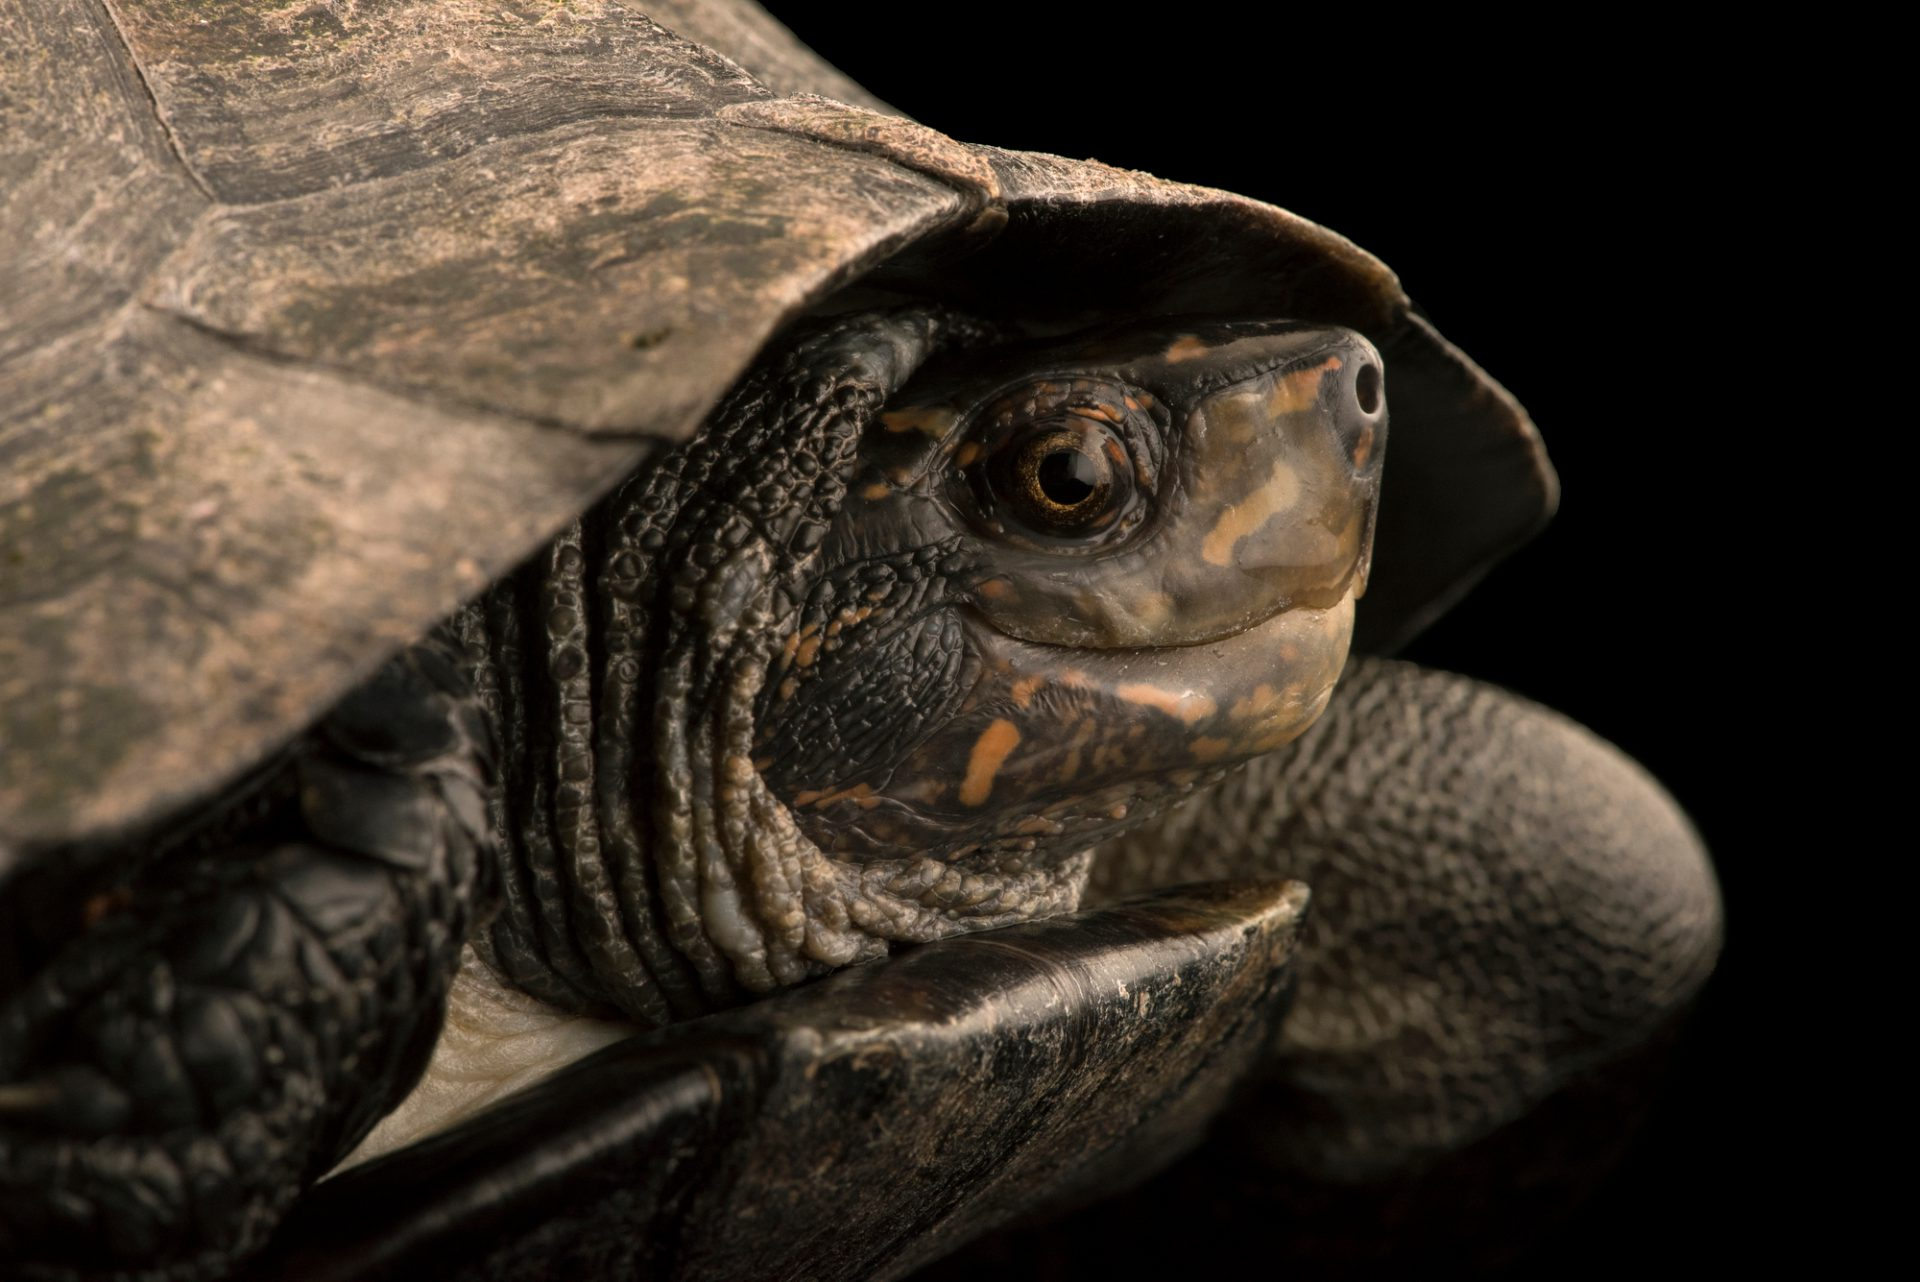 Photo: Indian black turtle (Melanochelys trijuga) at the Singapore Zoo.